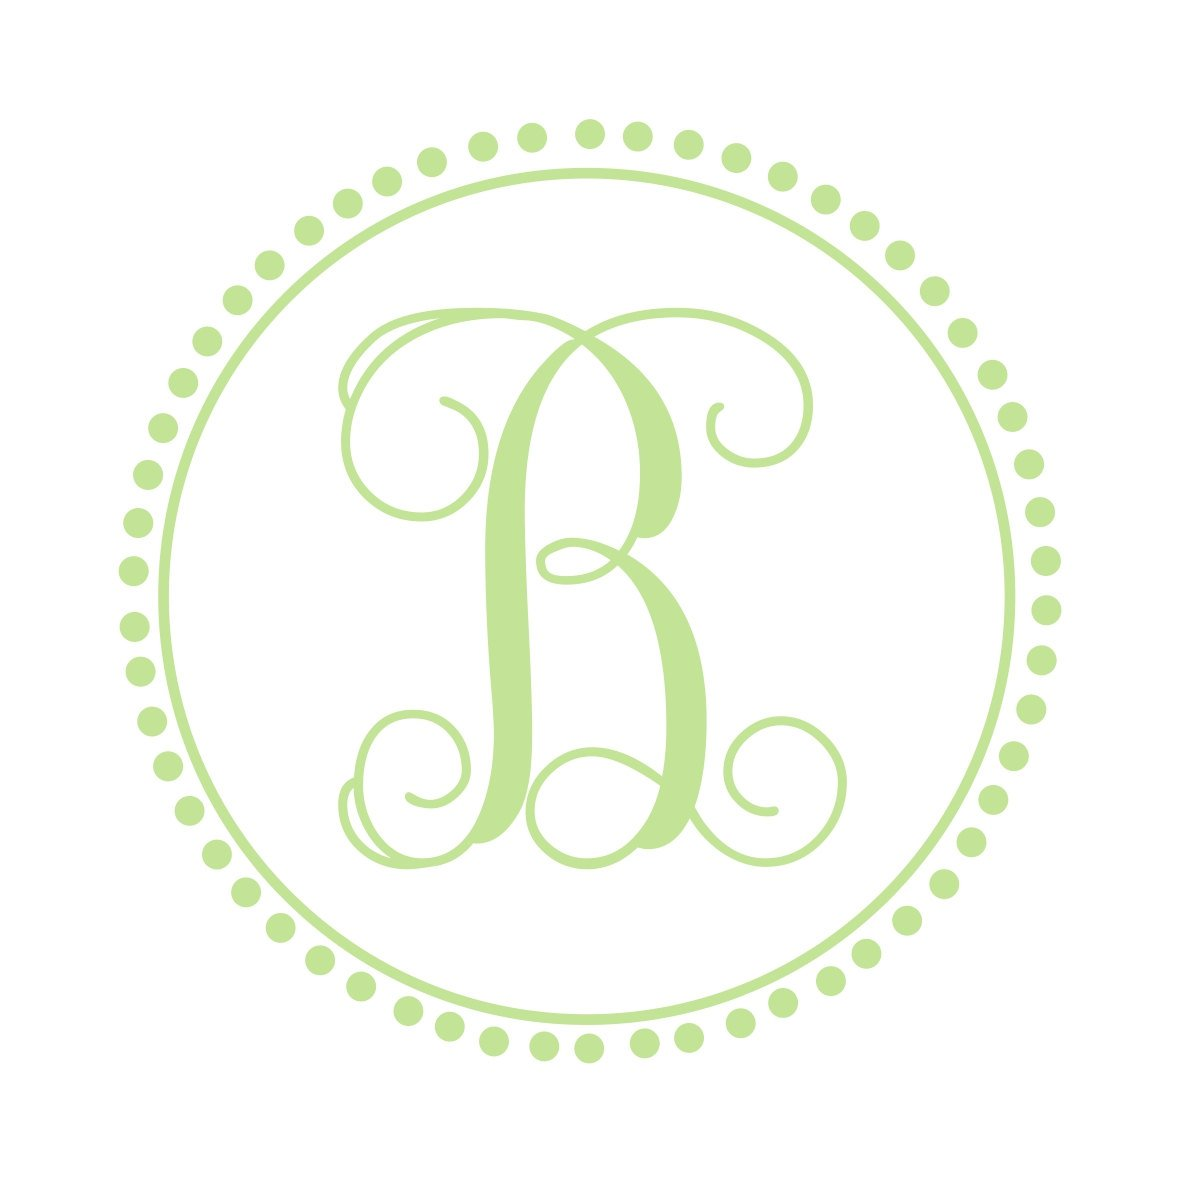 Preppy Monogram | Vine Font Single Initial Monogram Decal | Nursery Decor | Dorm Decor | Sorority Decor